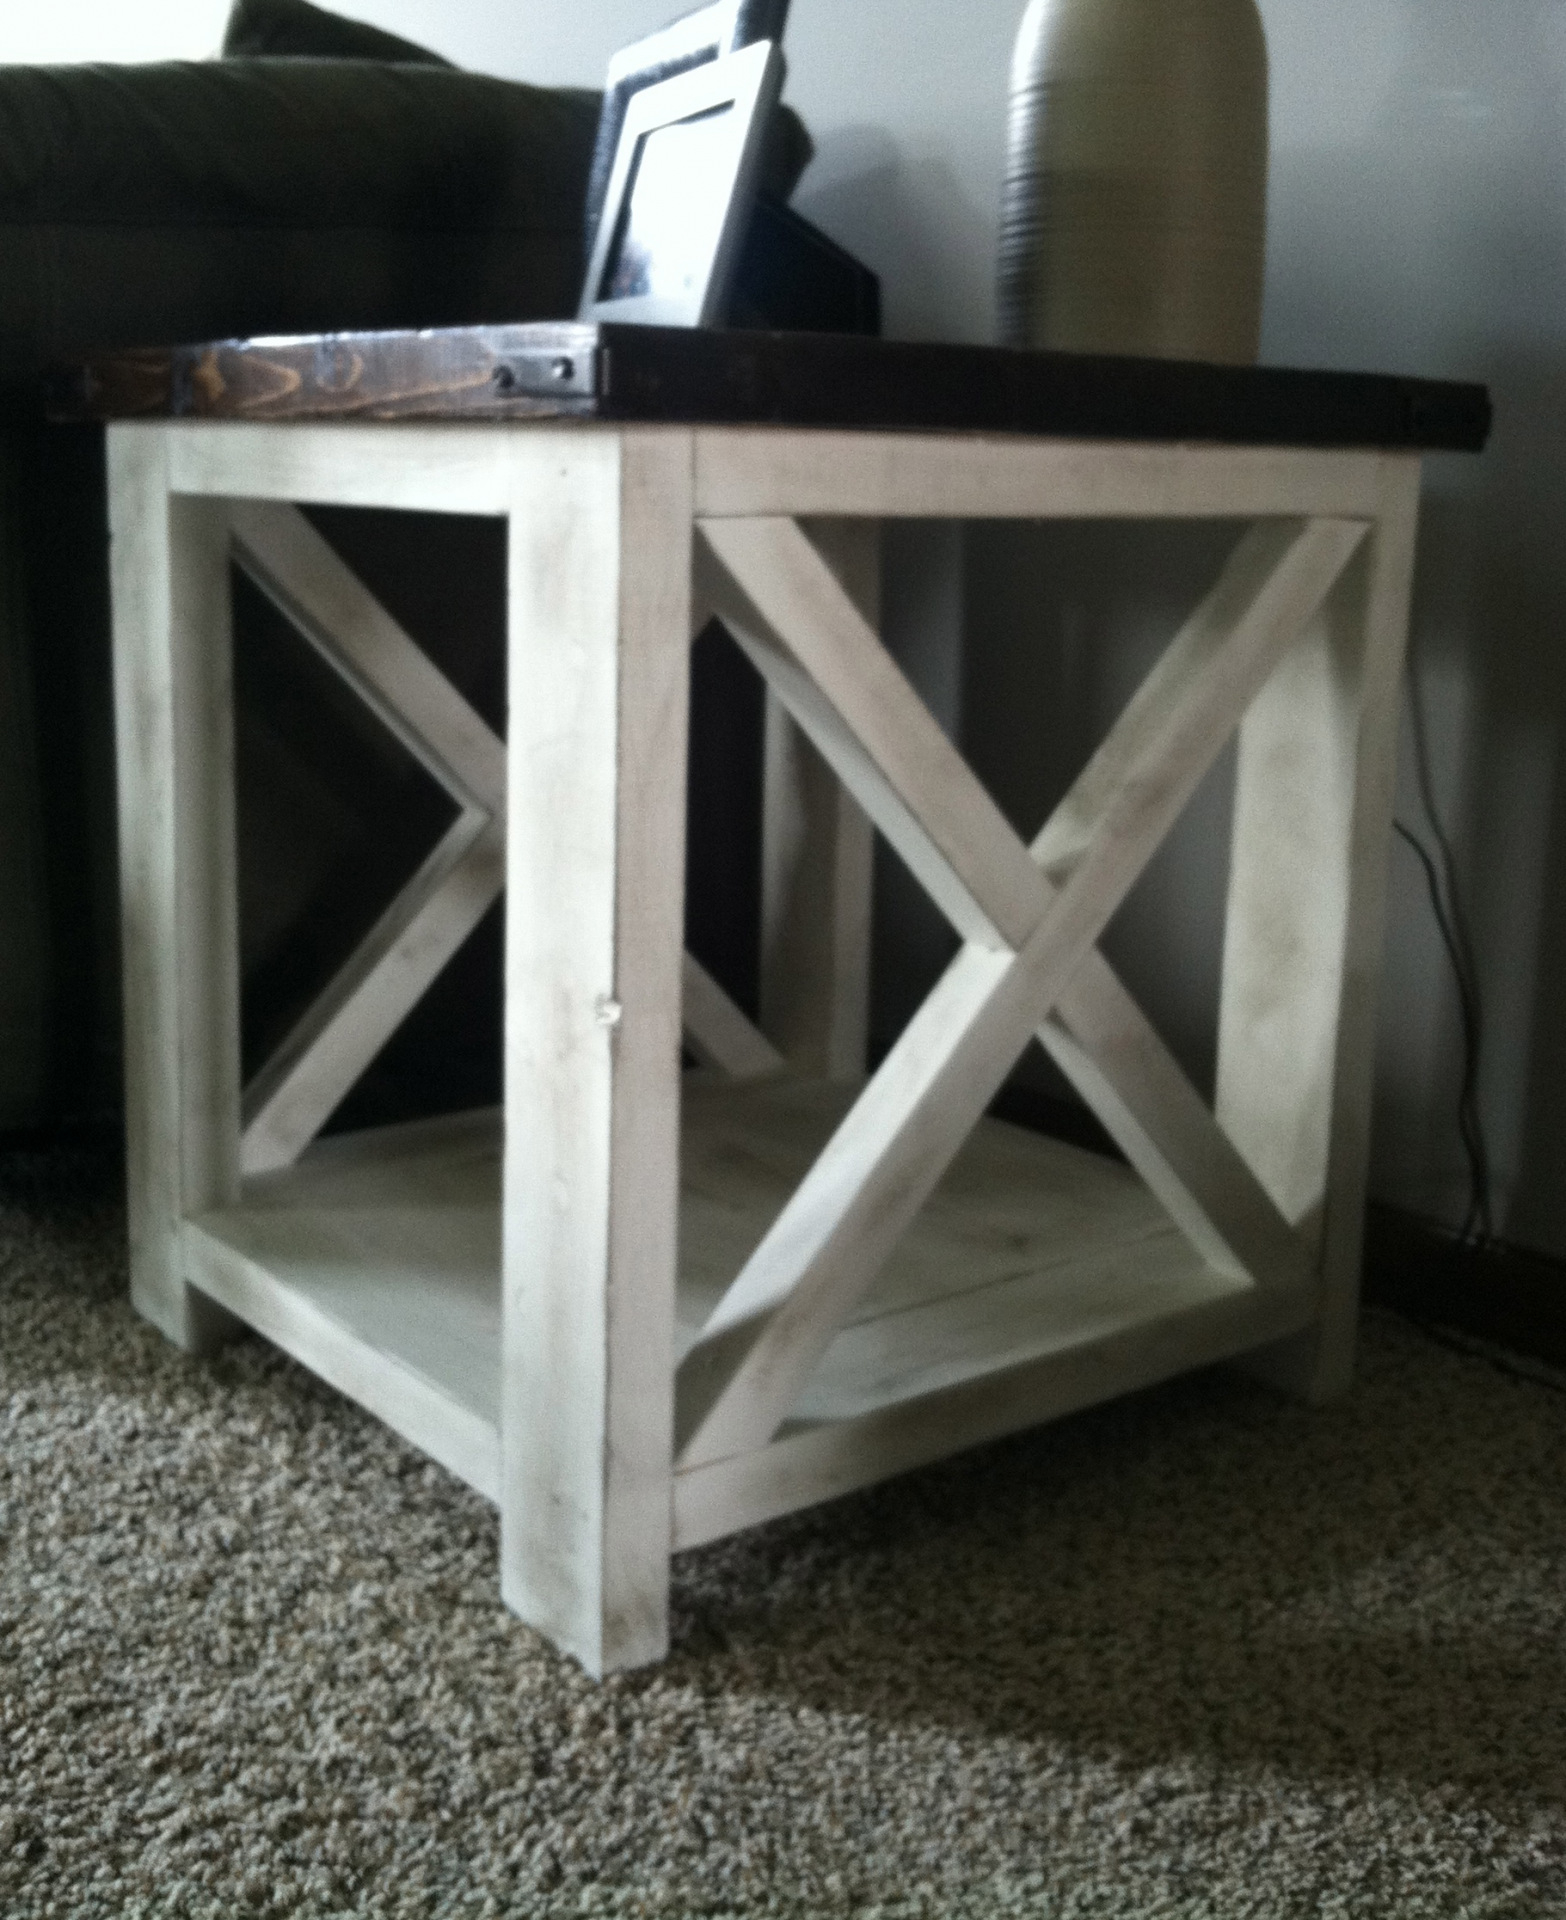 end coffee table ana white rustic diy projects red side accent tables kmart shoe rack furniture row dining centerpiece ideas yellow bedside lamps laptop desk wheels ethan allen